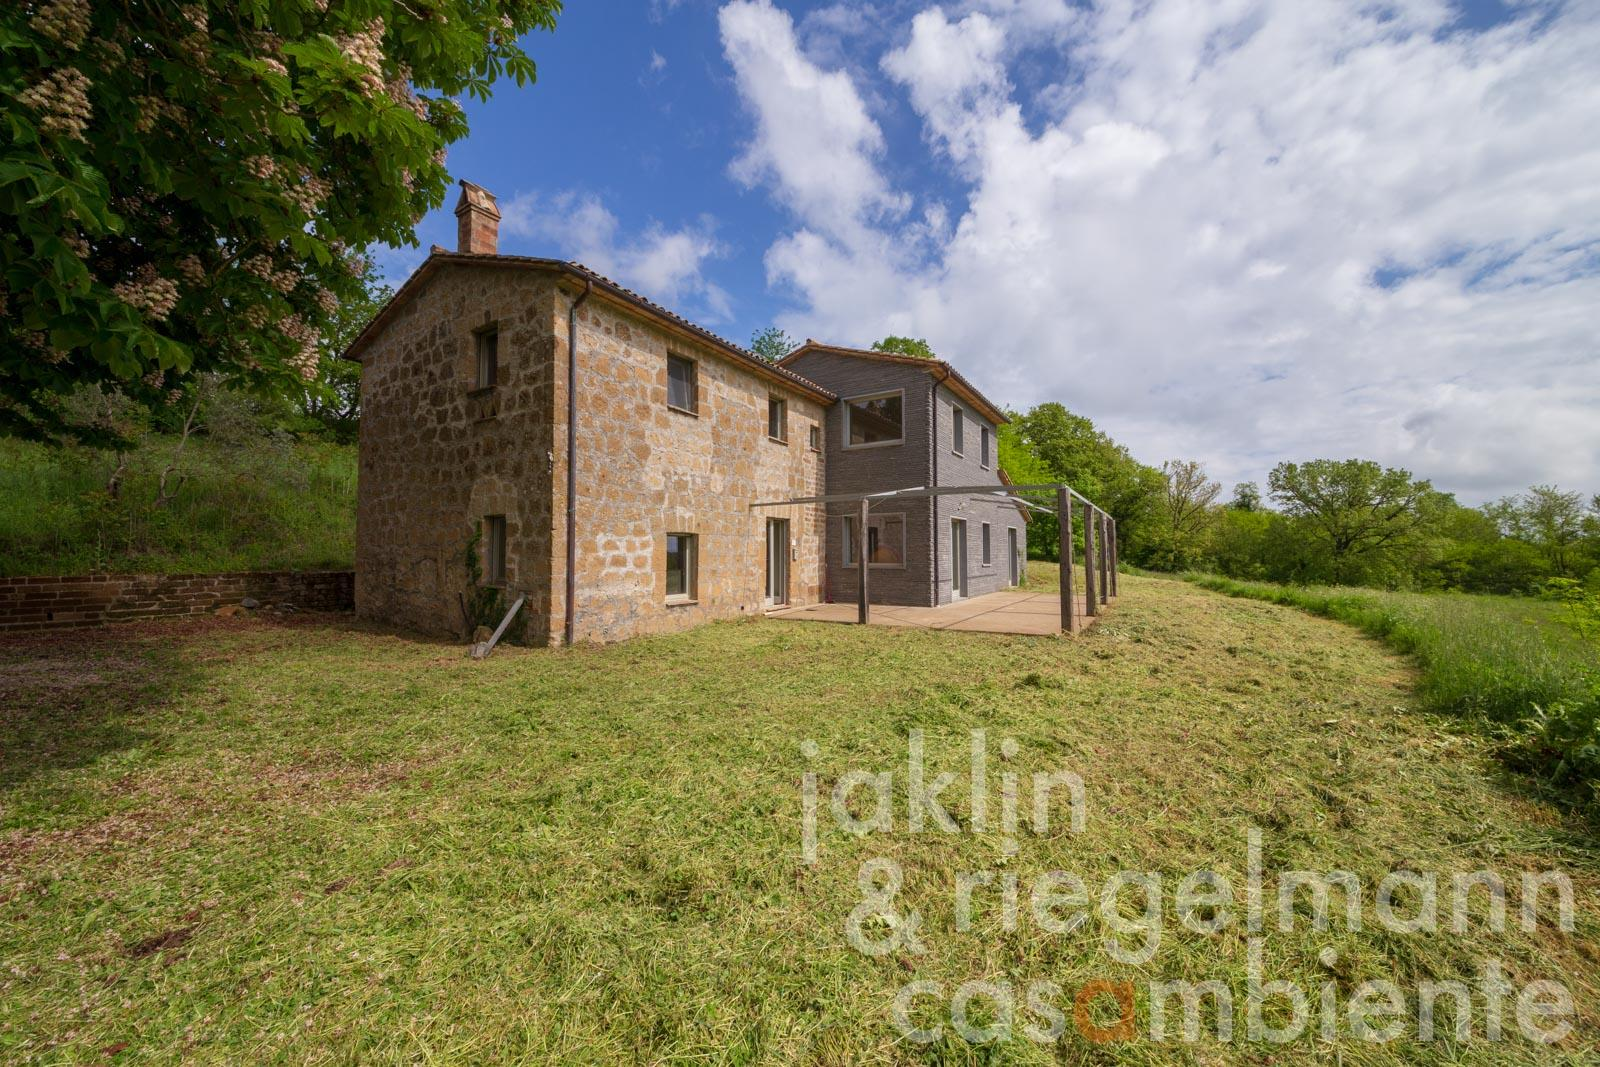 Restored Italian country house for sale close to Orvieto in Umbria with 2.4 hectares of land